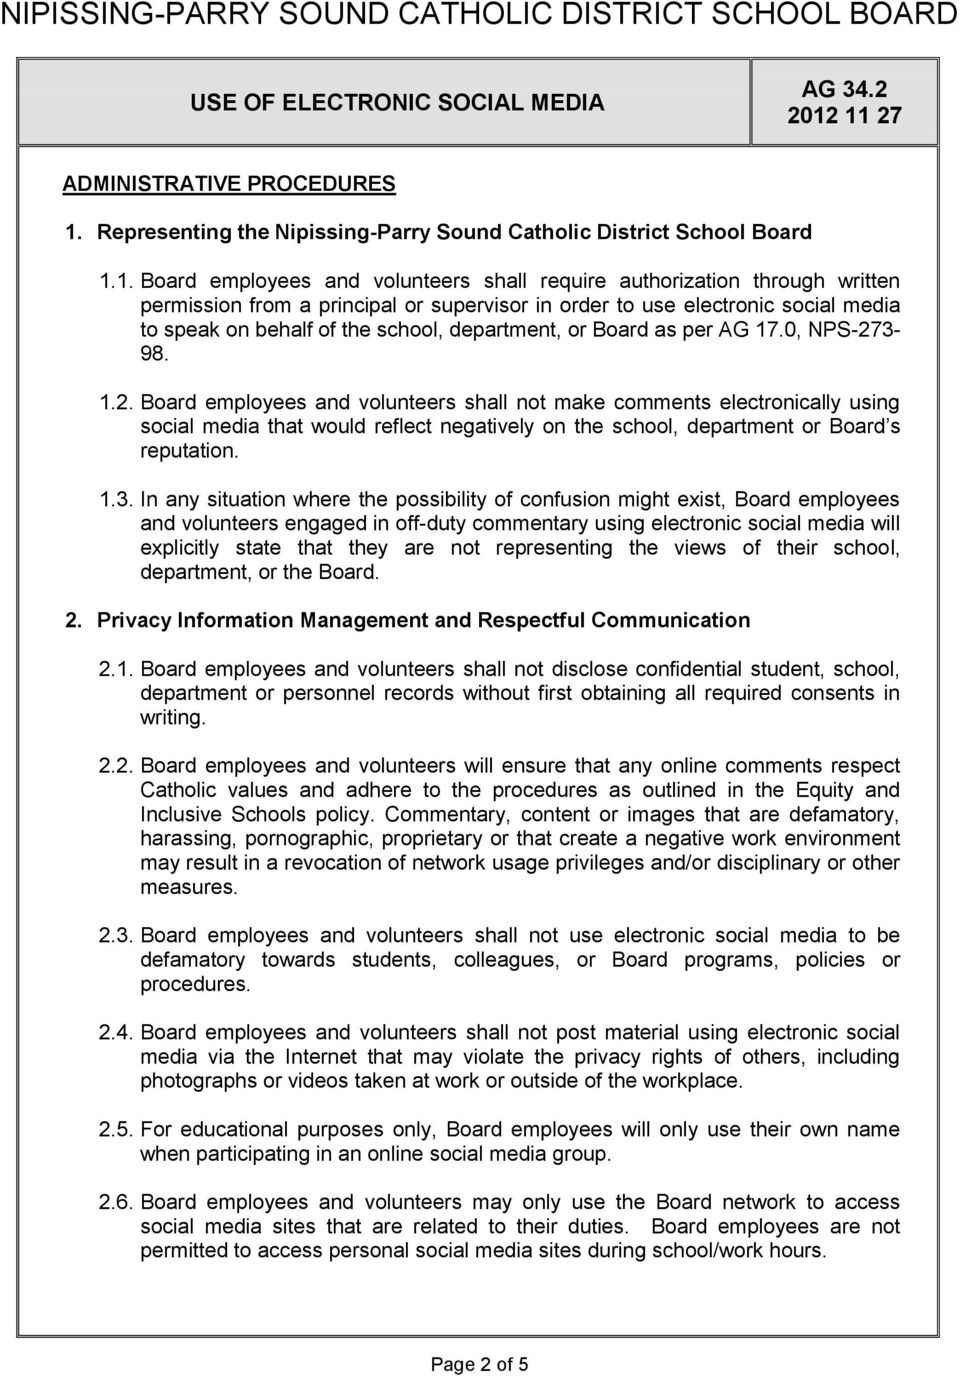 1. Board employees and volunteers shall require authorization through written permission from a principal or supervisor in order to use electronic social media to speak on behalf of the school,